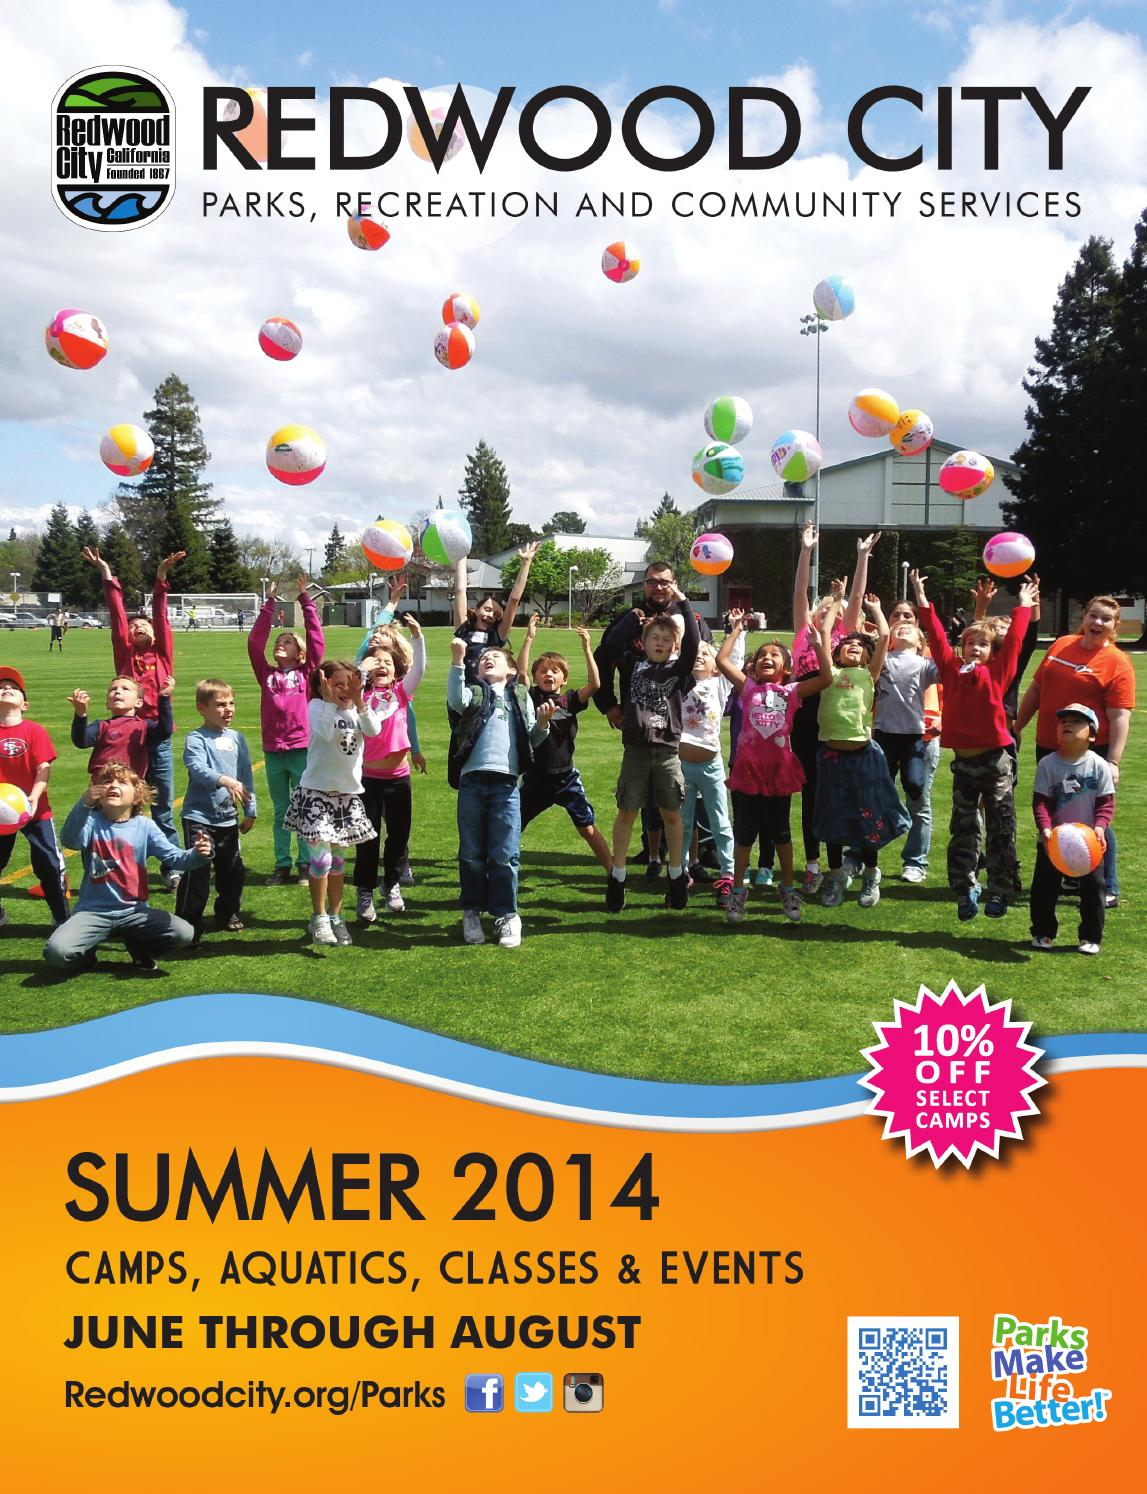 redwood city summer activity guide by redwood city parks redwood city summer 2014 activity guide by redwood city parks recreation community services issuu